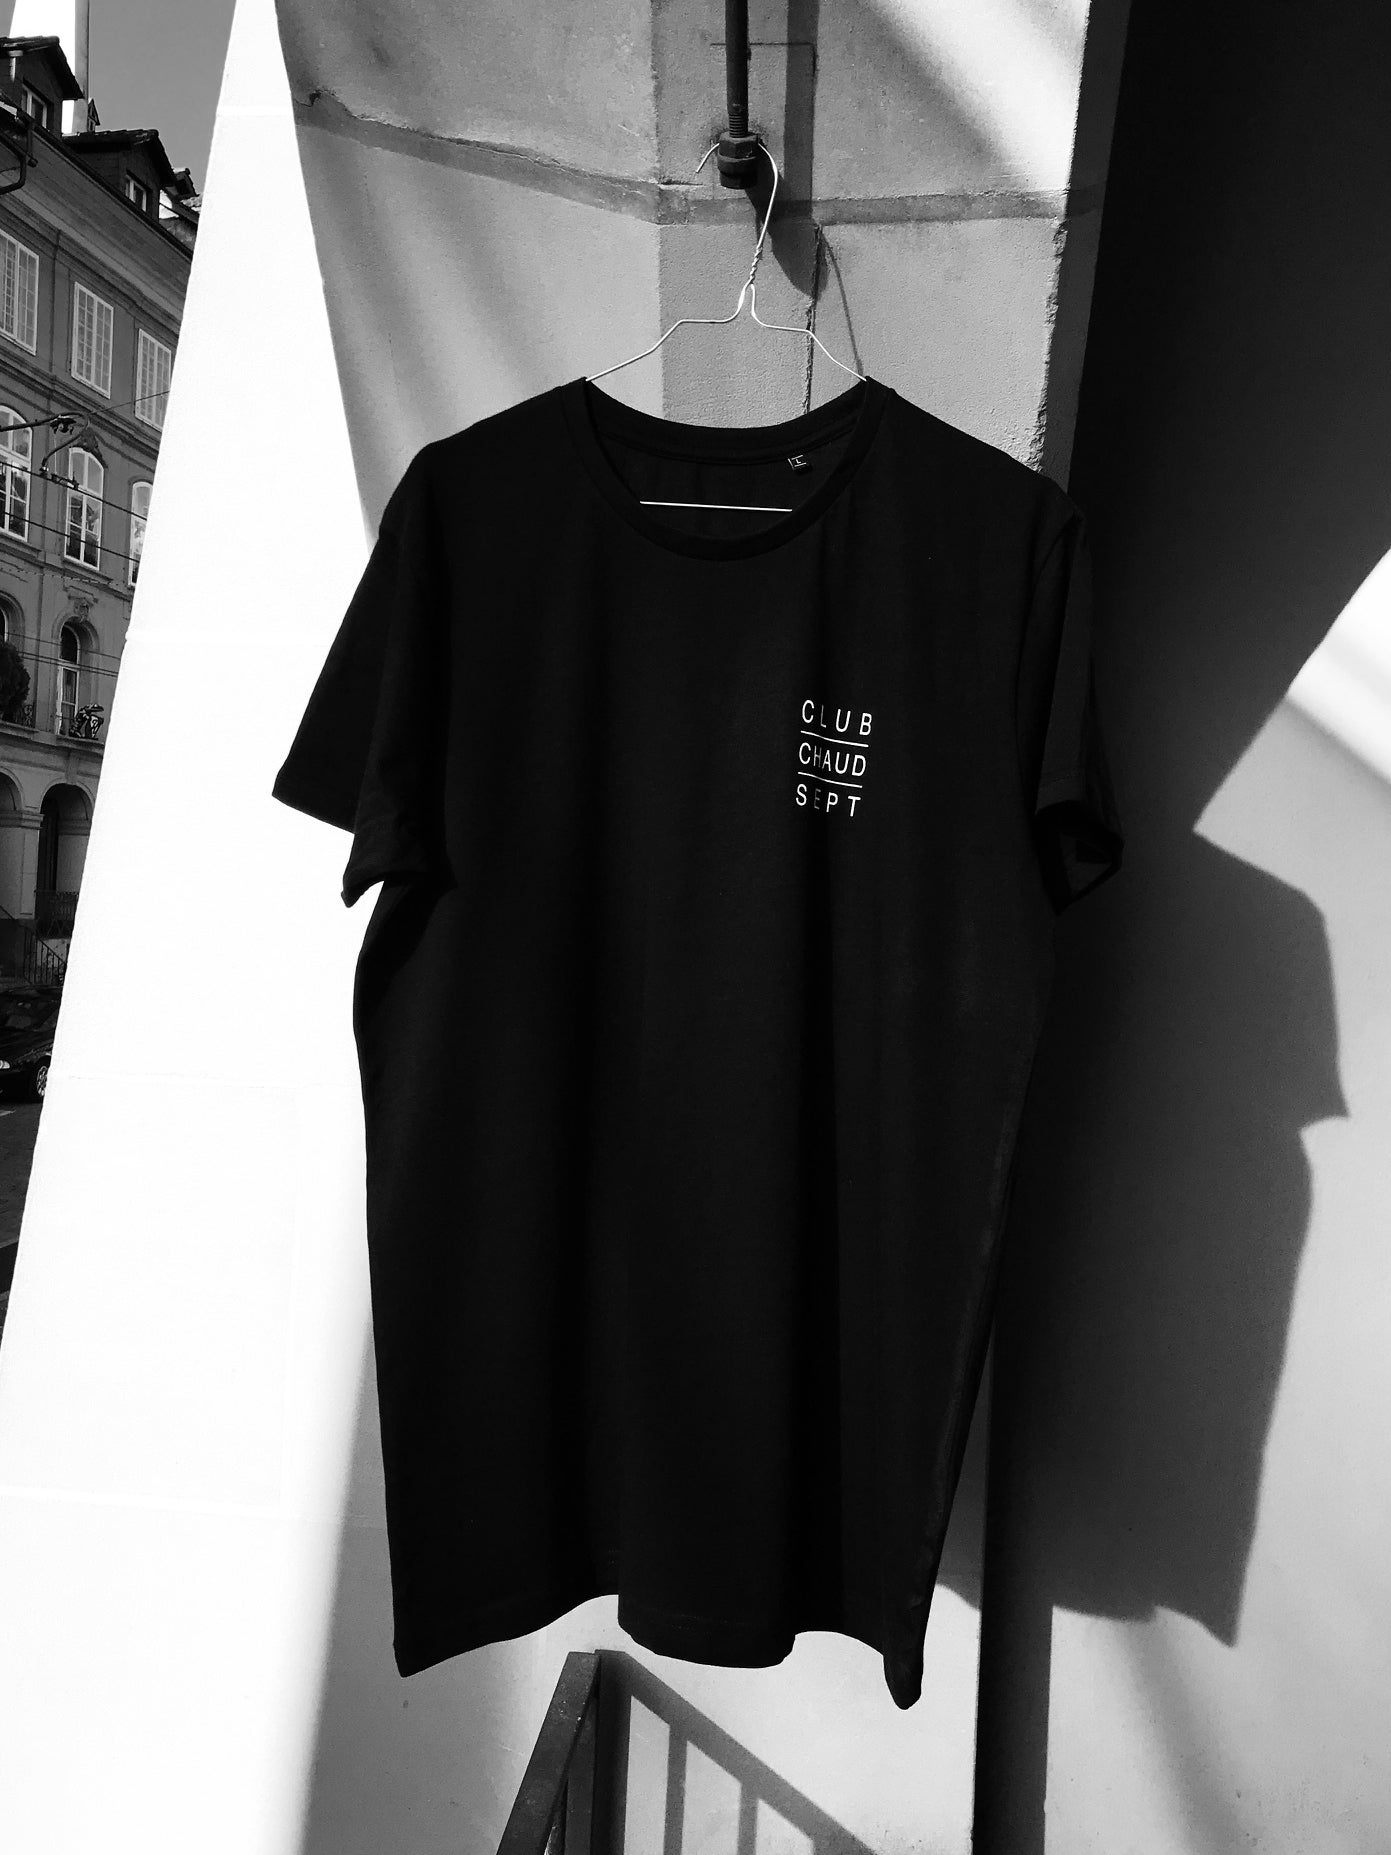 Image of T-Shirt CLUB CHAUD SEPT - black